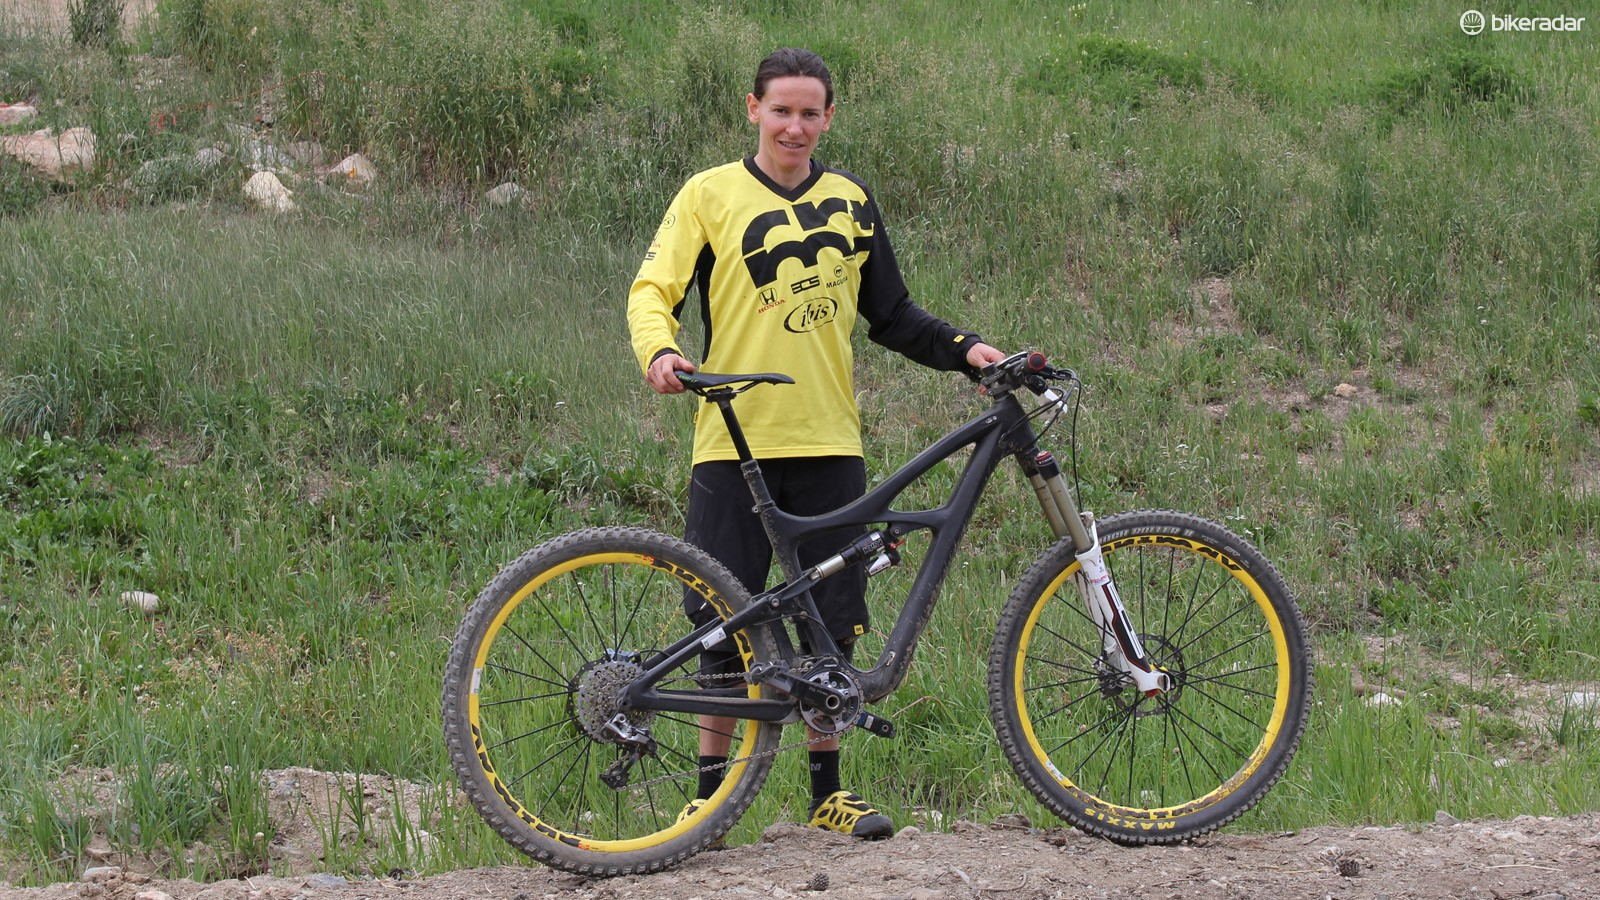 Anne-Caroline road this Ibis 27.5in prototype to a first place finish at last weekend's Enduro World Series stop in Winter Park, Colorado